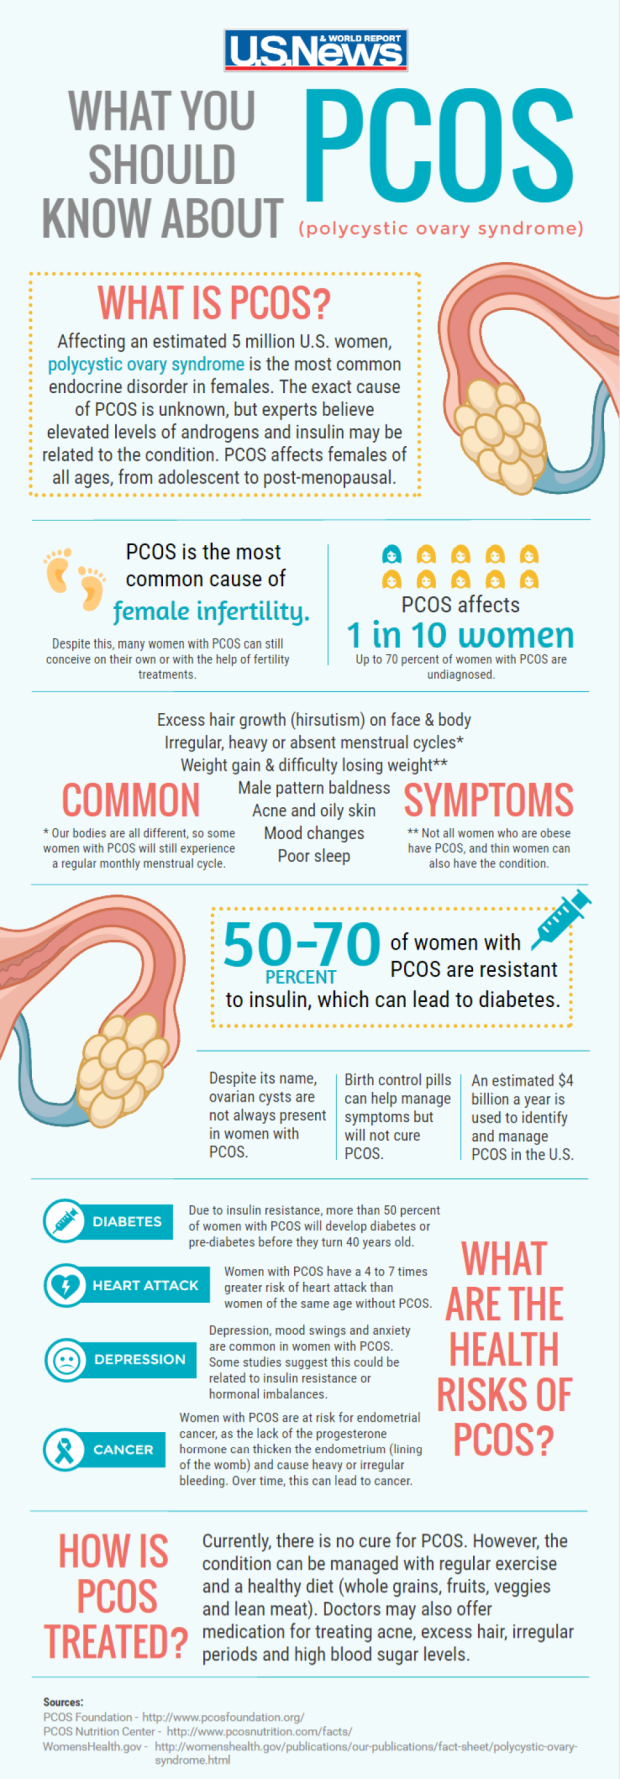 PCOS image